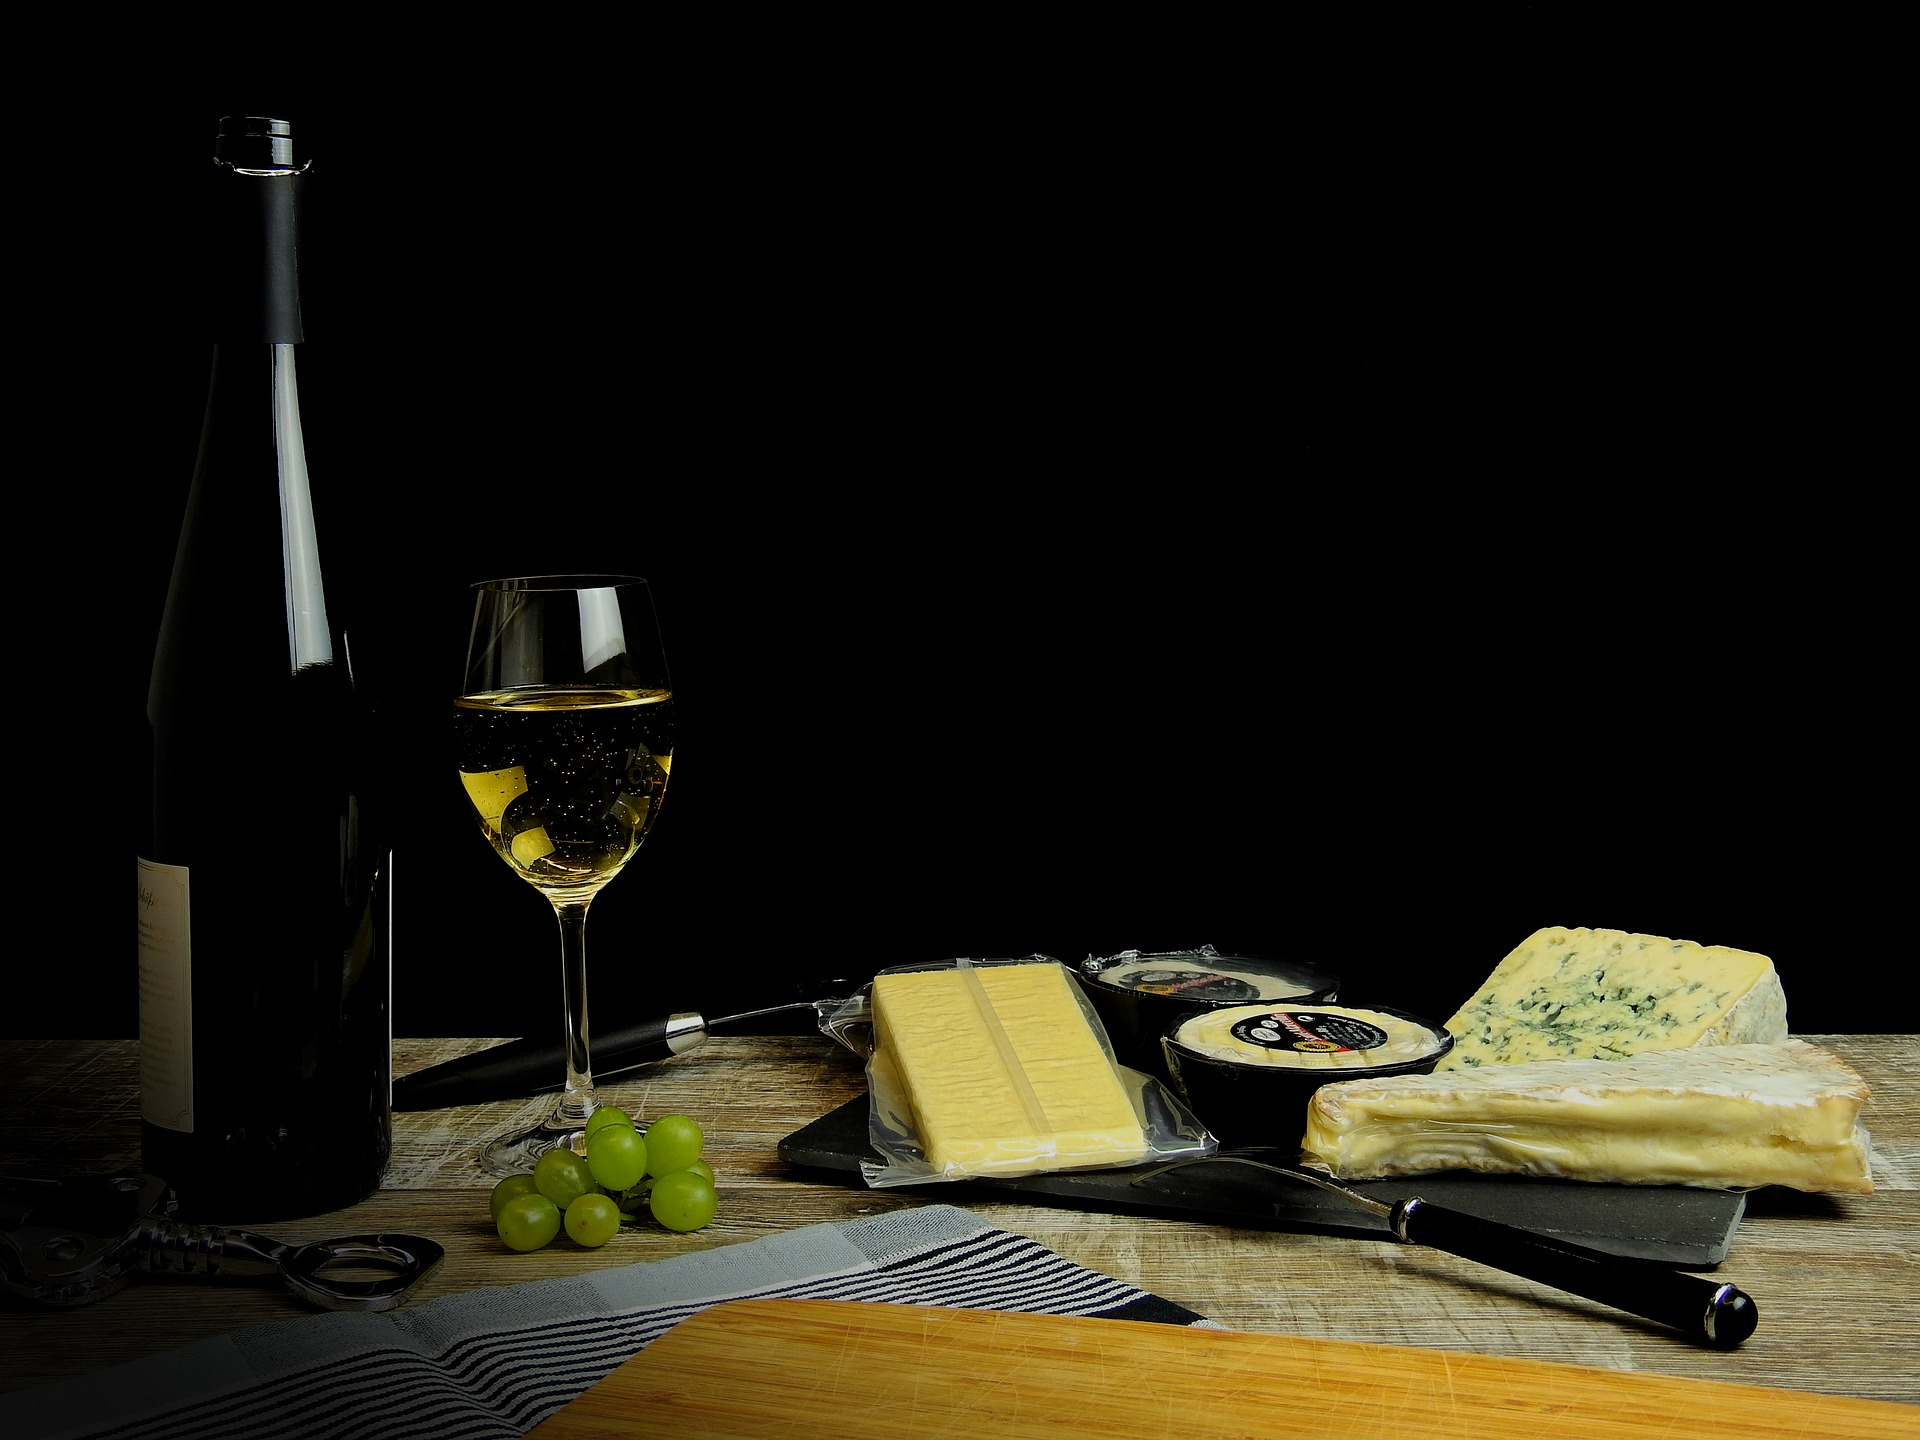 Wine and Cheese - We host a bi-annual Wine and Cheese event that provides an opportunity for students to meet their professors and professionals in a more casual manner and to learn more about the field of psychology. The Psychology Students' Association would like to invite all students, professors, alum, and friends on Wednesday, November 7 from 5-7pm in FSS4004. Light snacks and drink tickets will be provided!